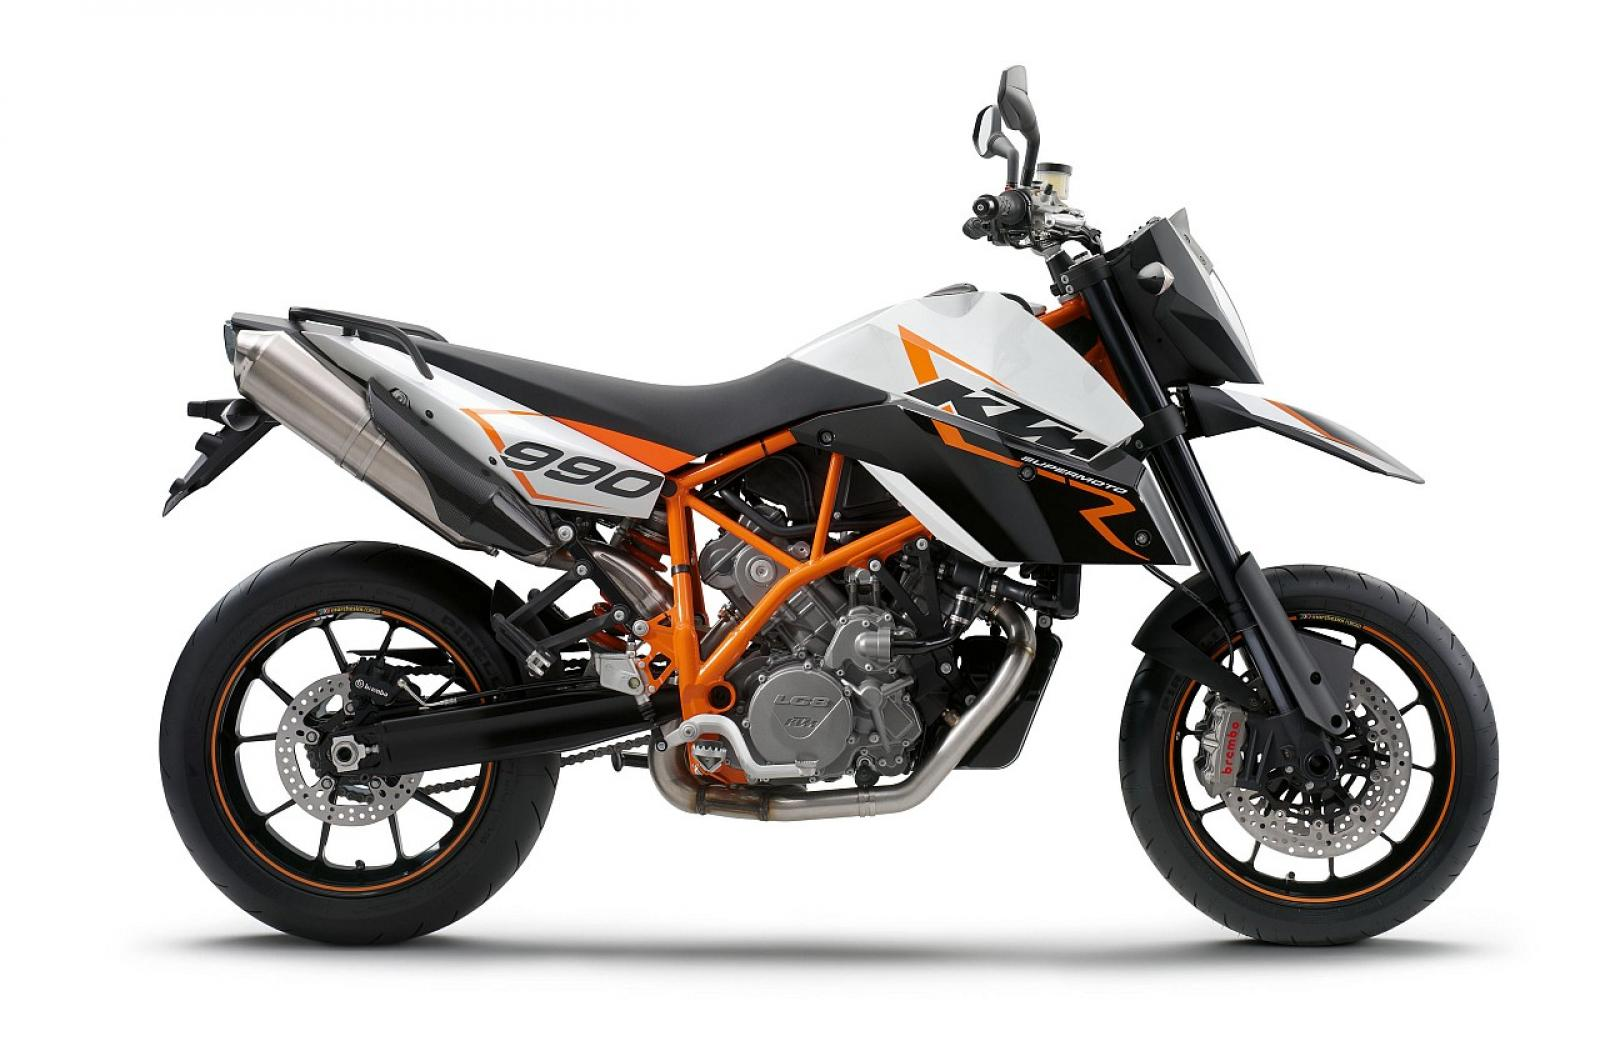 ktm ktm 950 supermoto r moto zombdrive com. Black Bedroom Furniture Sets. Home Design Ideas